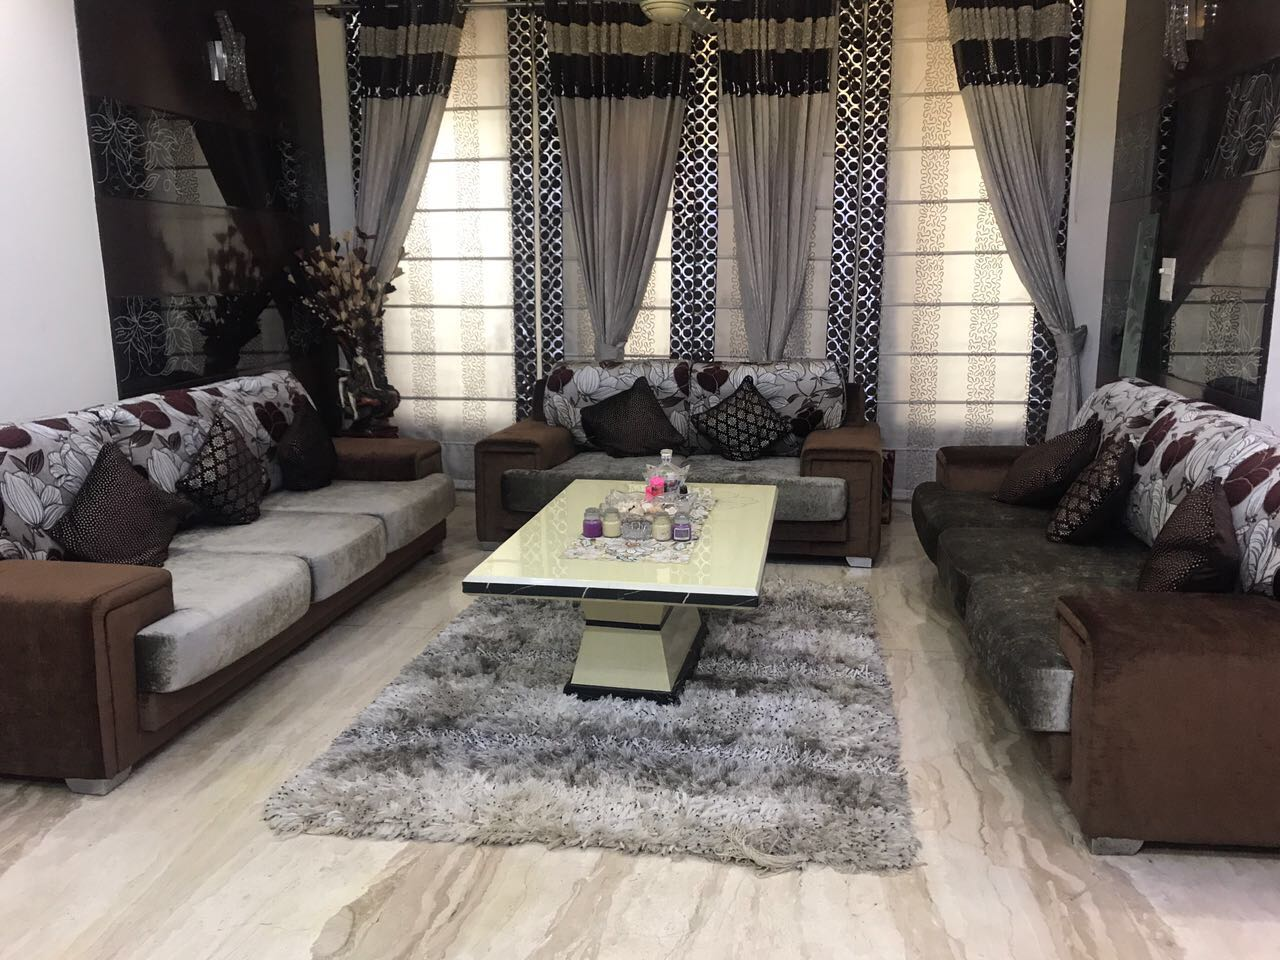 Living Room by Shriya Sabharwal